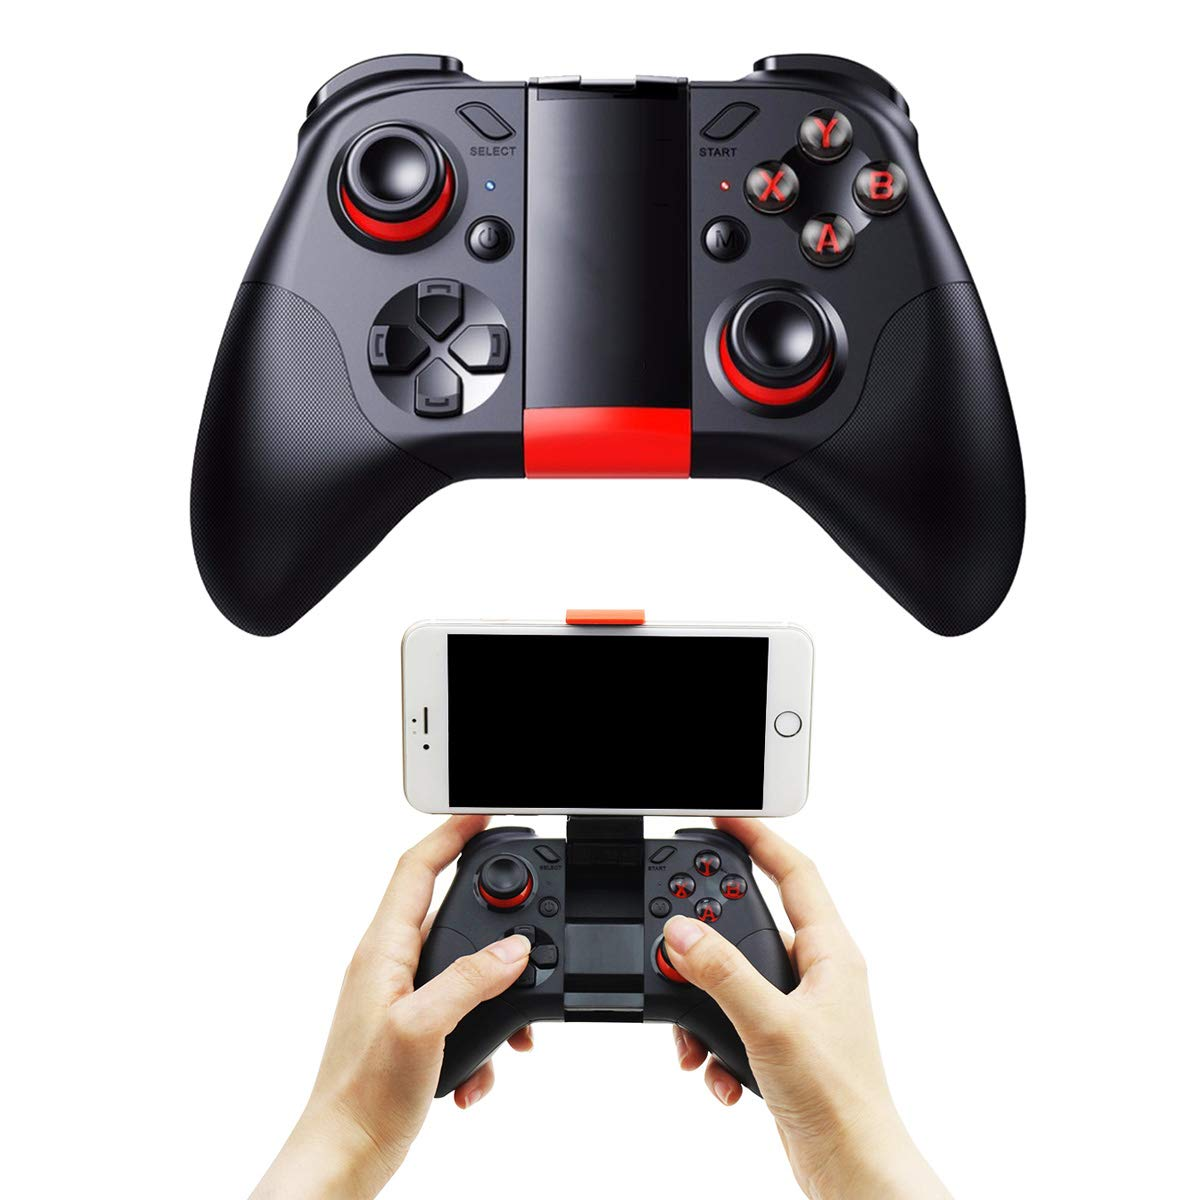 DZYXSB Bluetooth Gamepad Mobile Joypad Android Joystick Wireless VR Controller Smartphone Tablet PC Phone Smart TV Game Pad